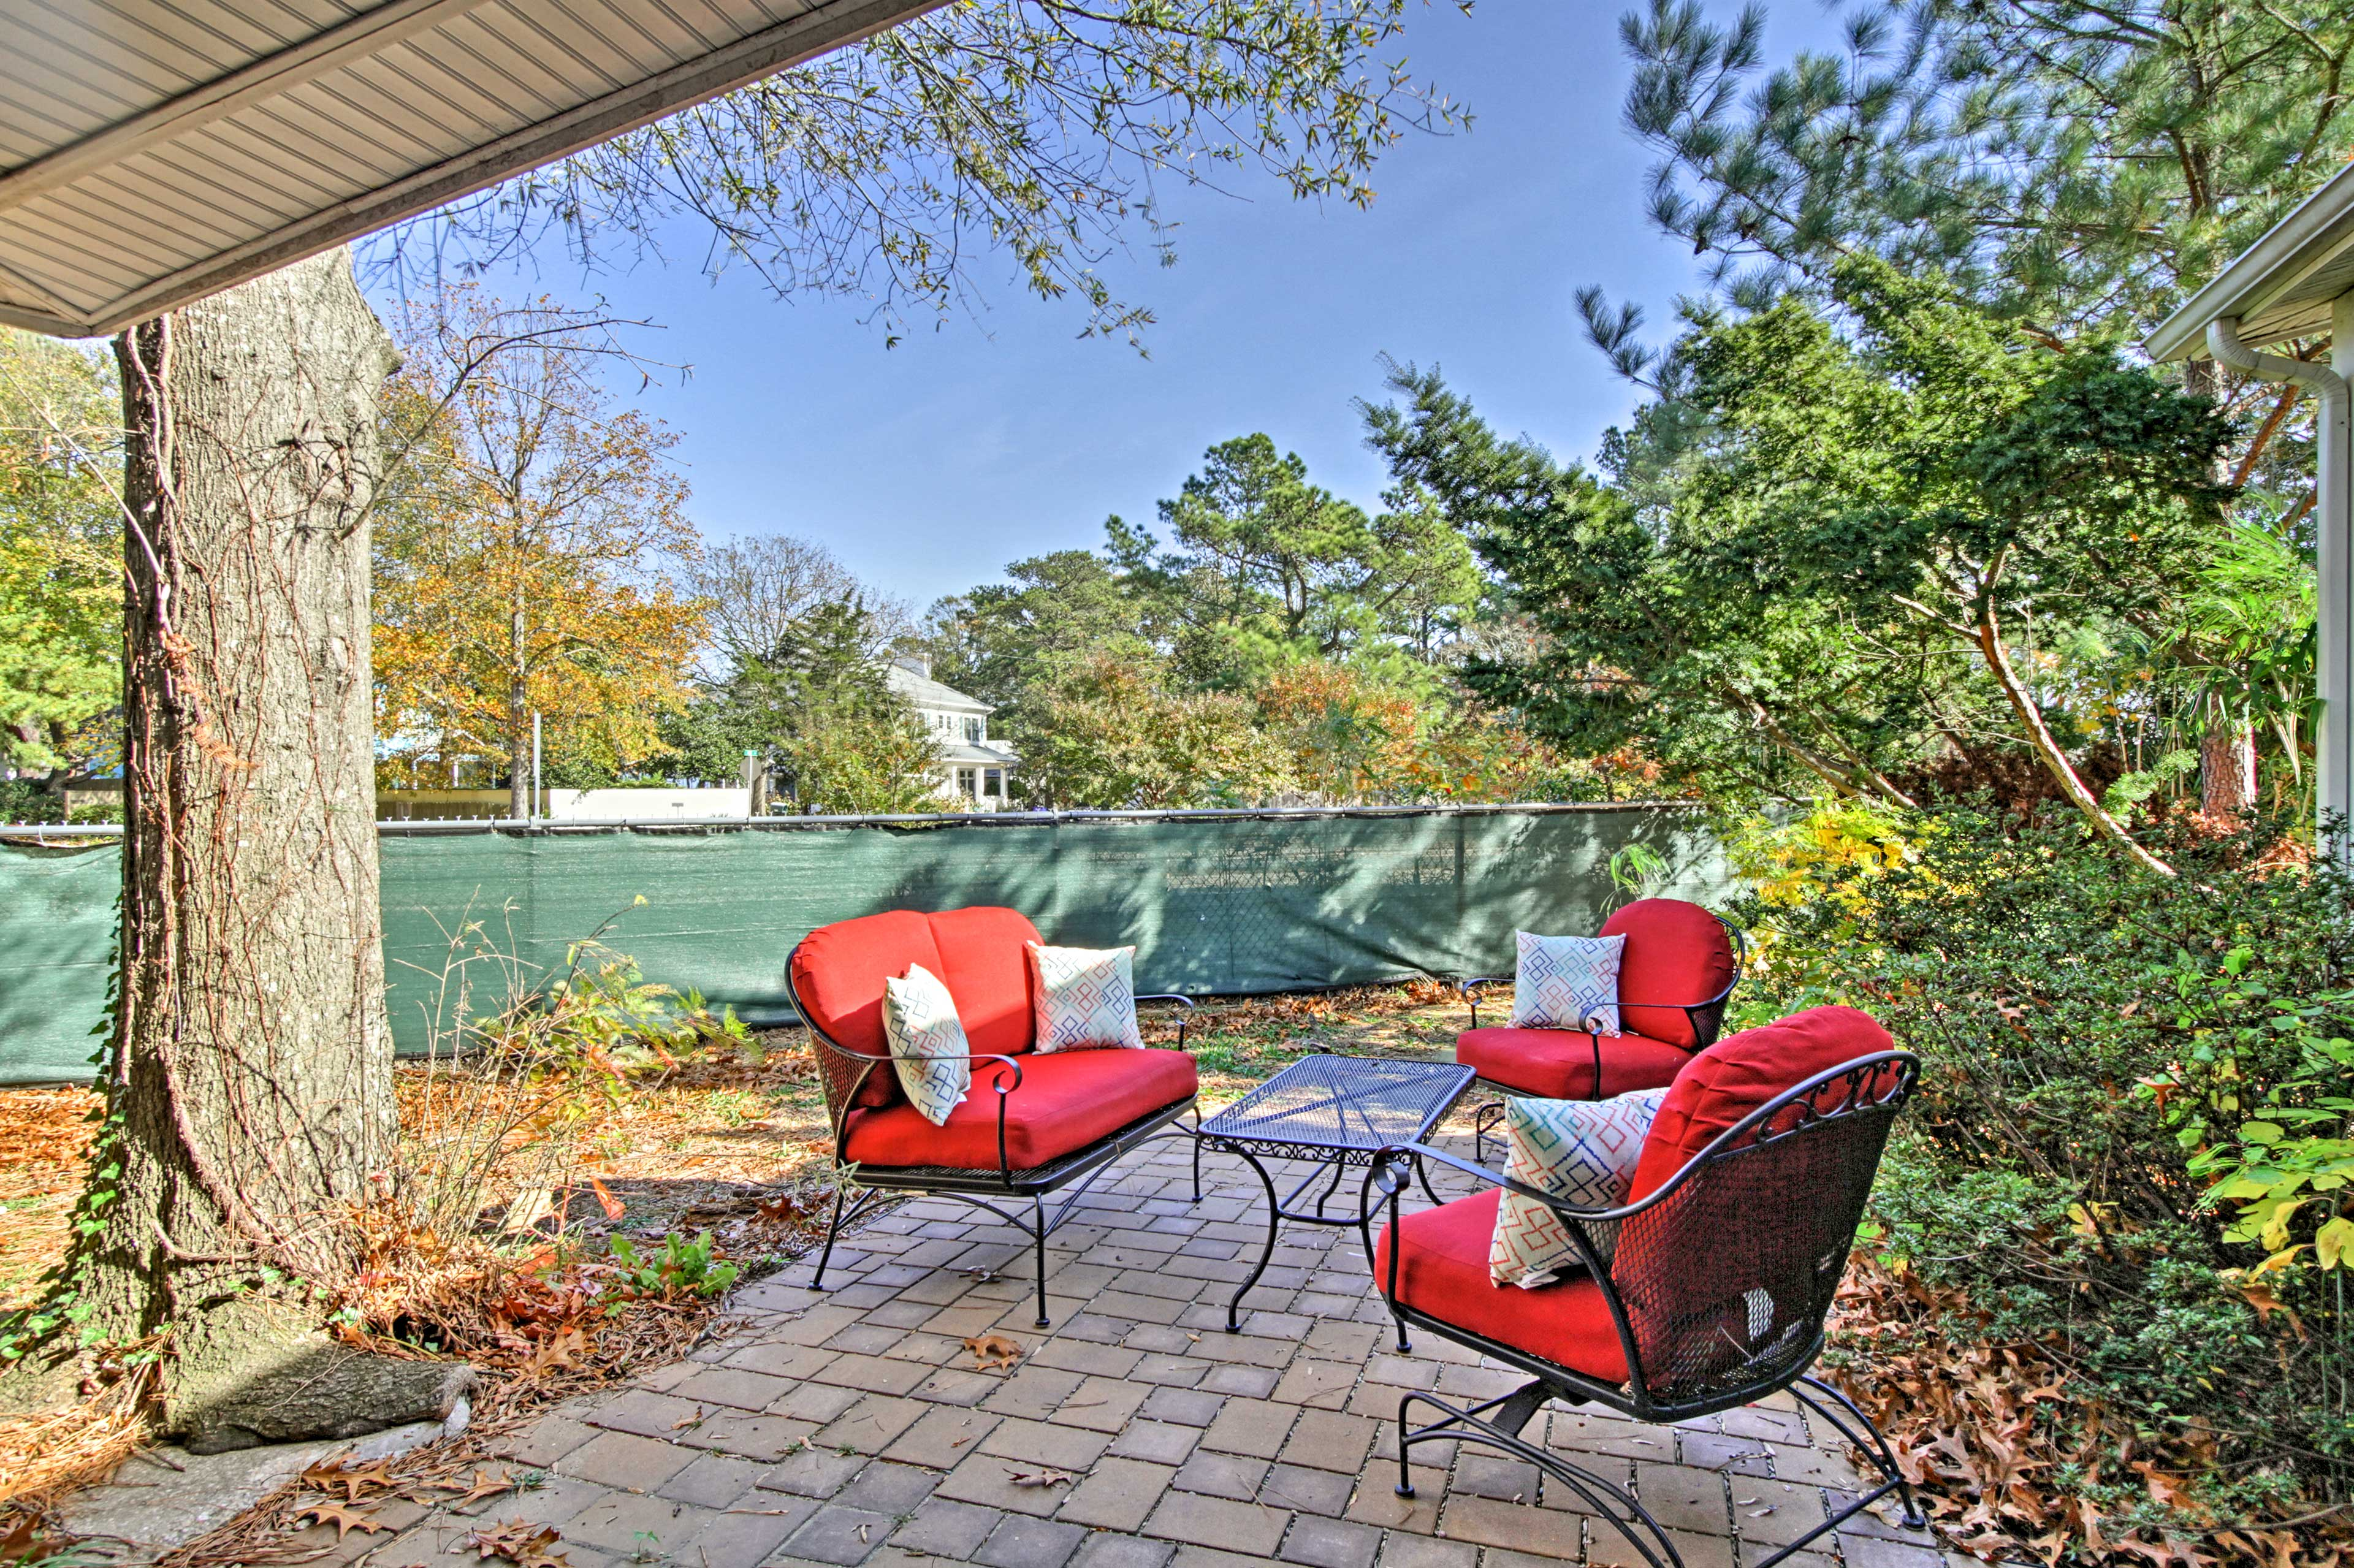 This property sits just 2 blocks from the beach and offers a private backyard.